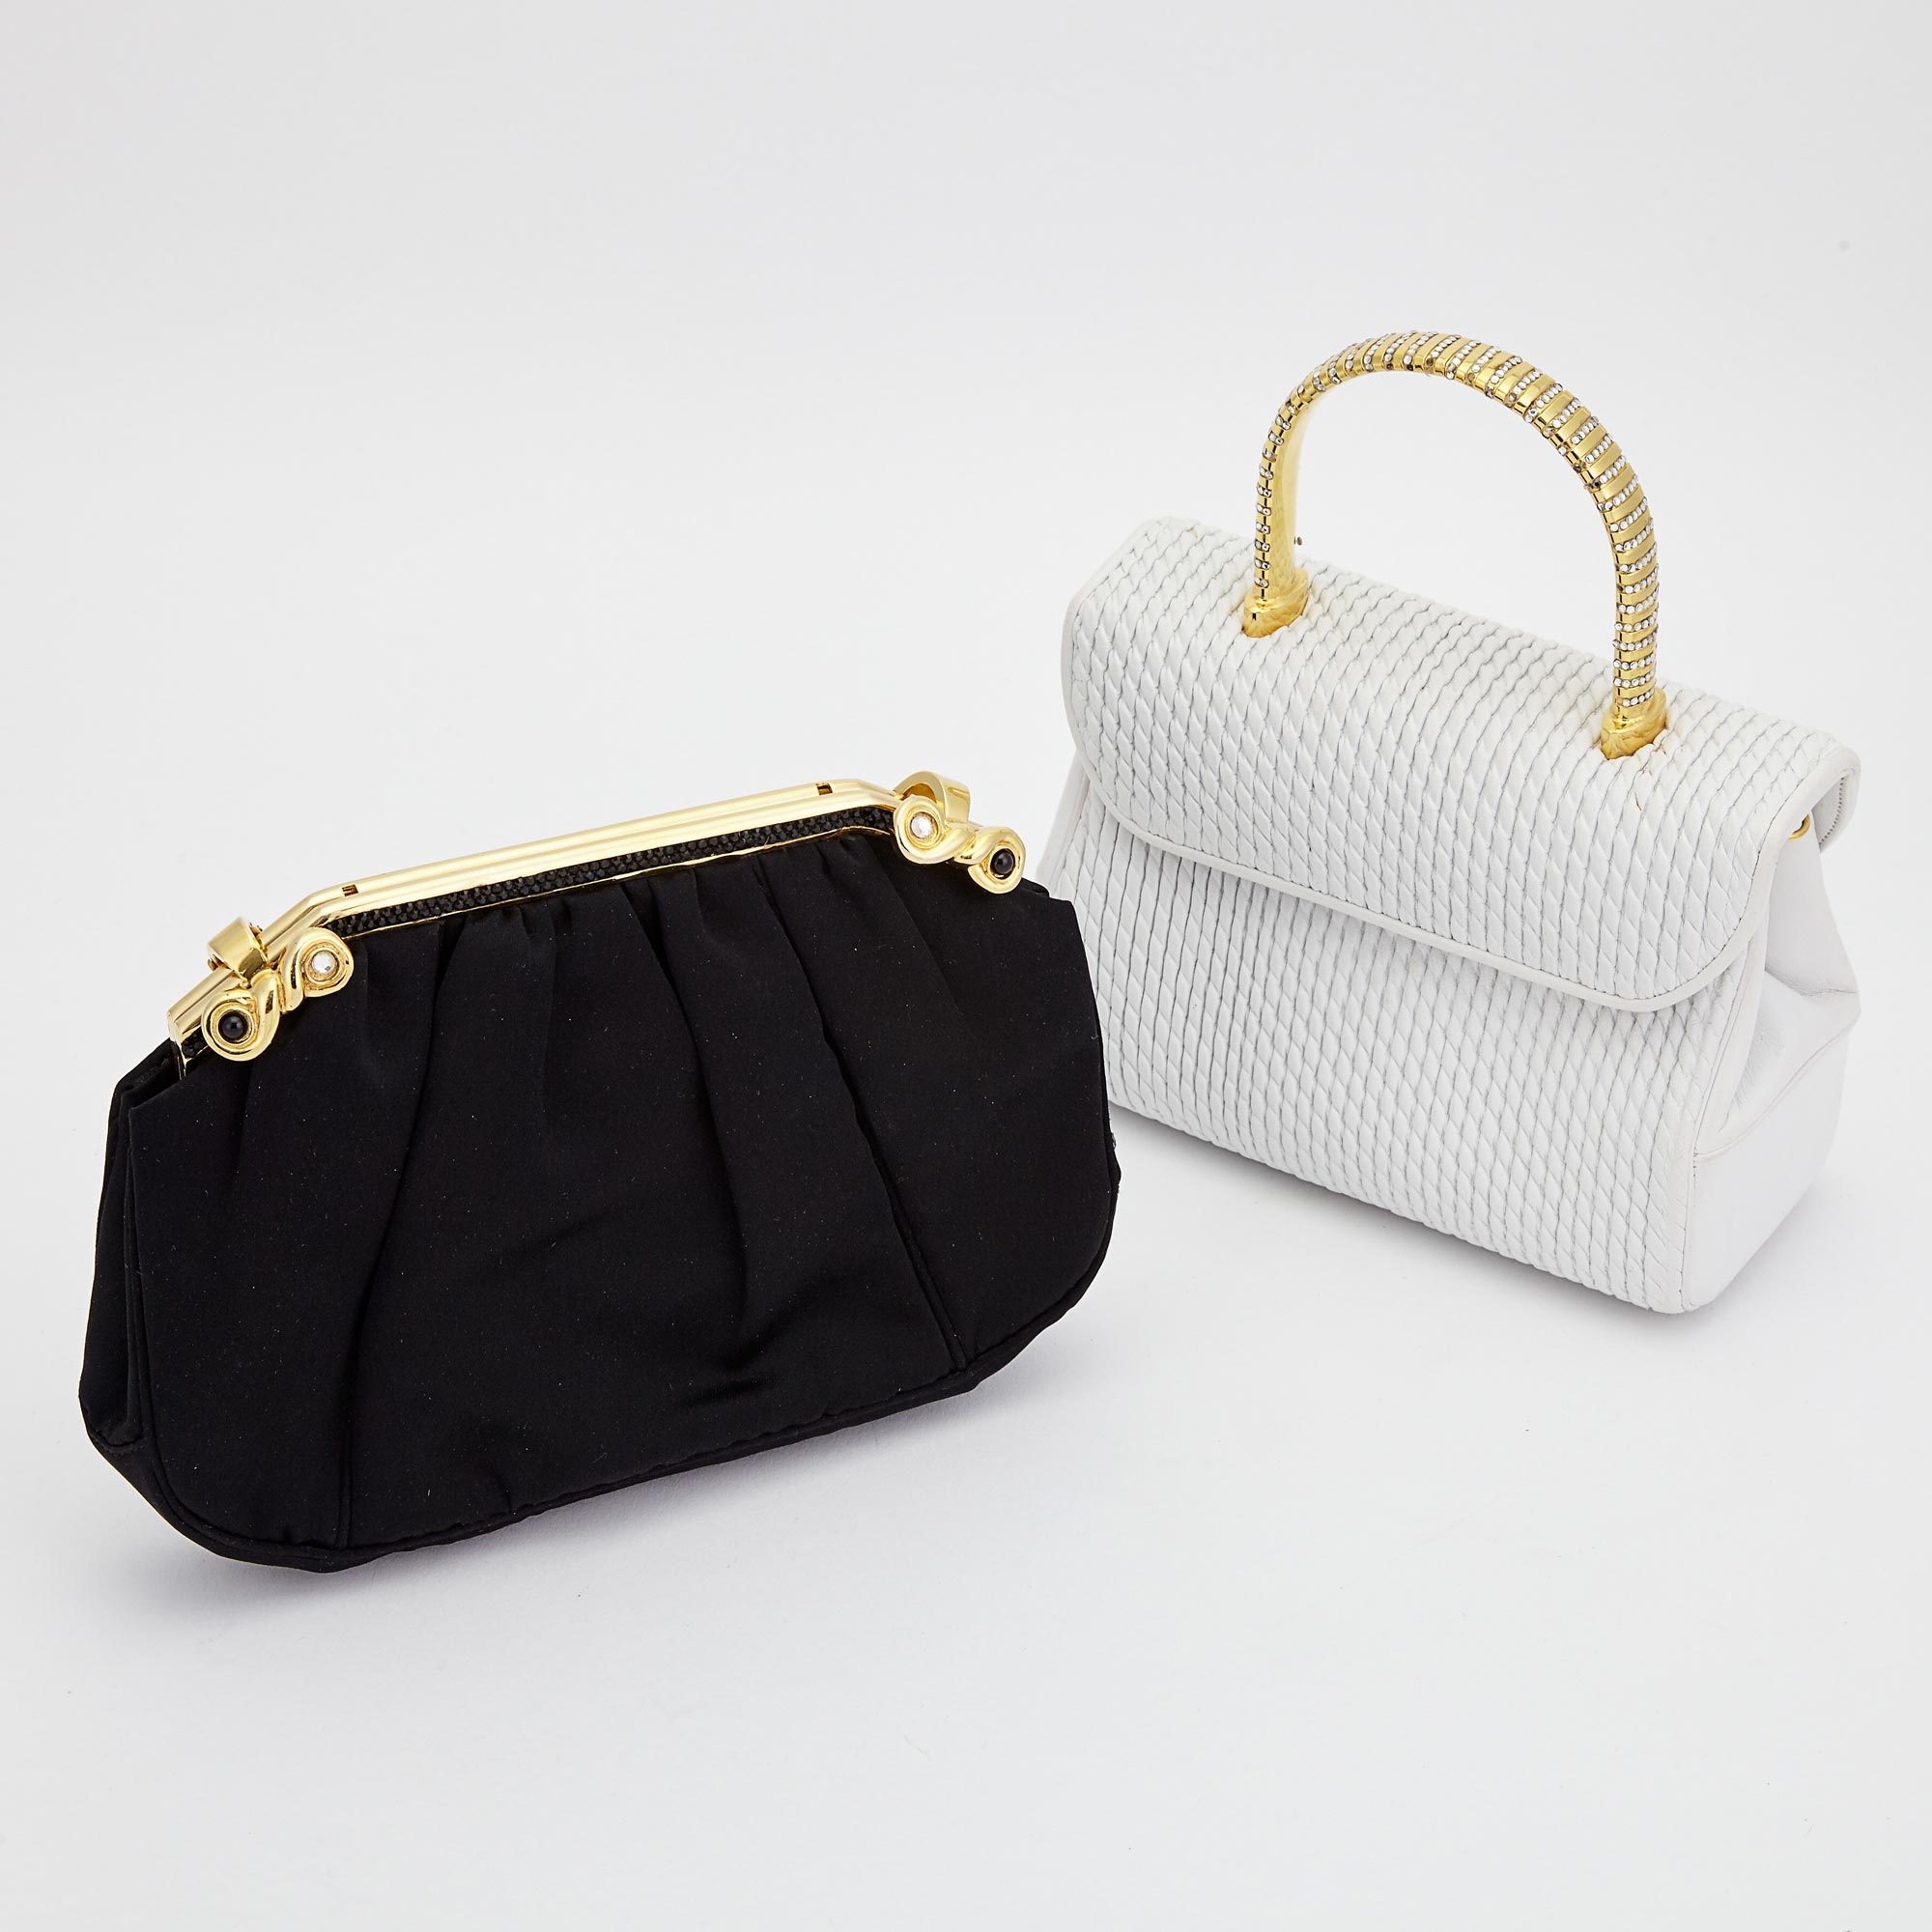 Lot image - White Leather Handbag and Black Satin Clutch, Judith Leiber